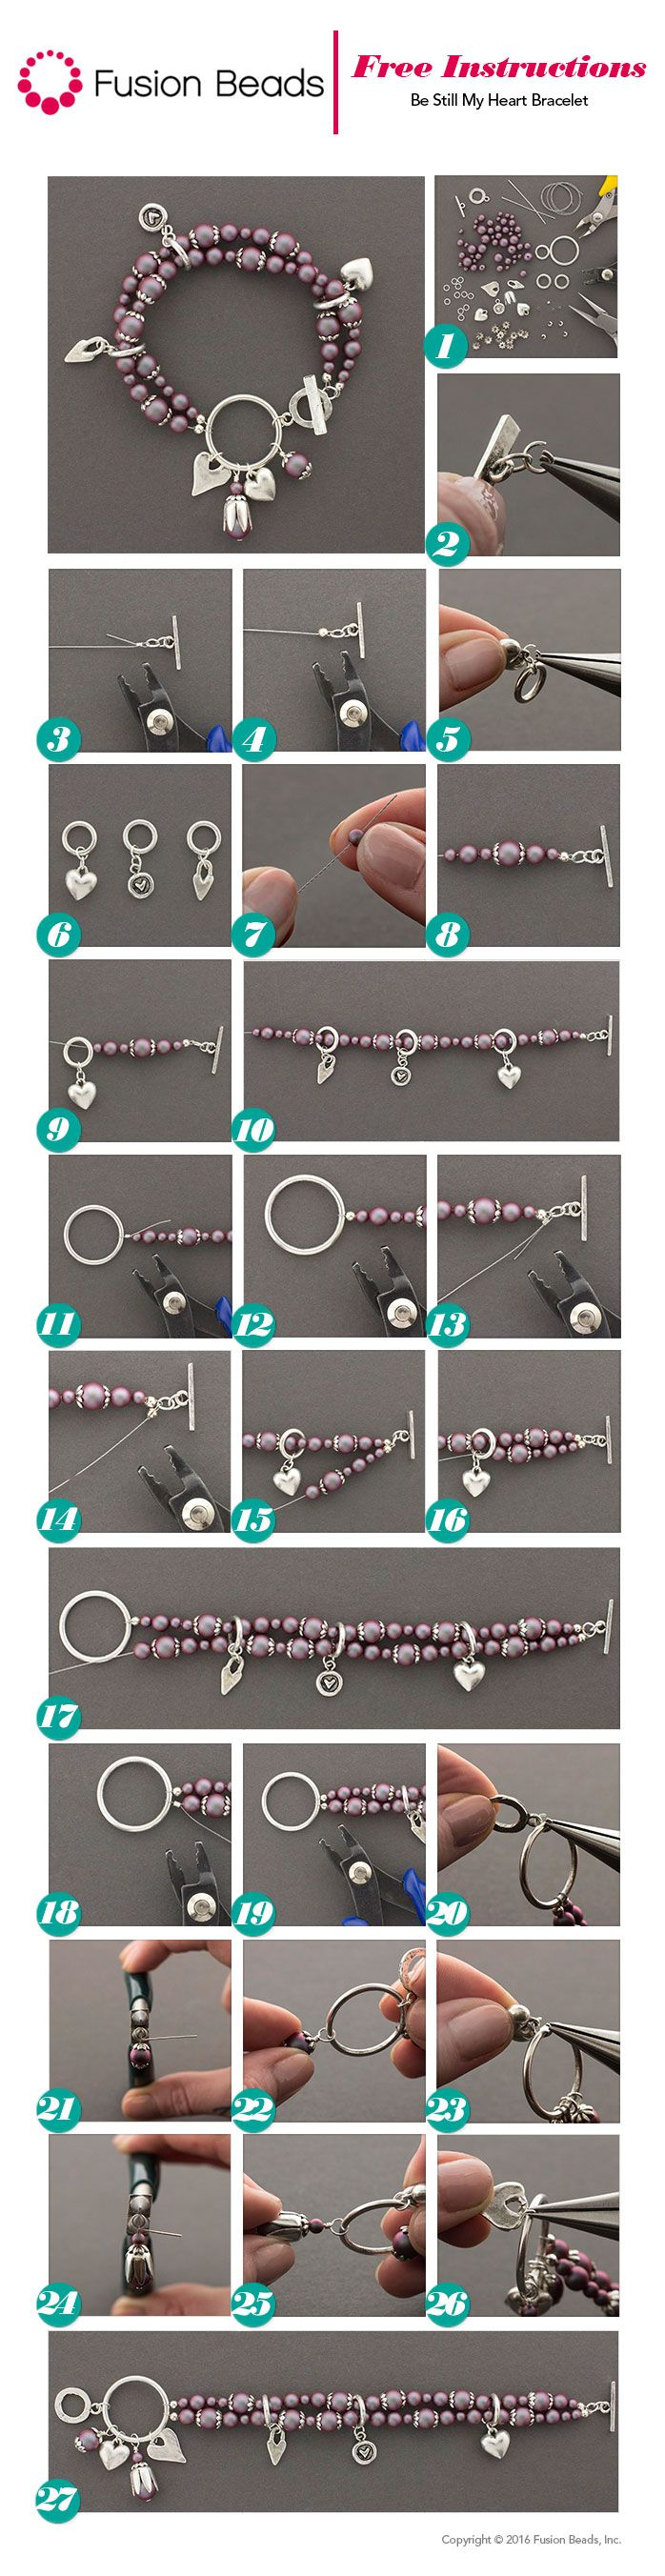 Use Swarovski Pearls and Nunn Charms to make our Be Still My Heart Bracelet. FusionBeads.com